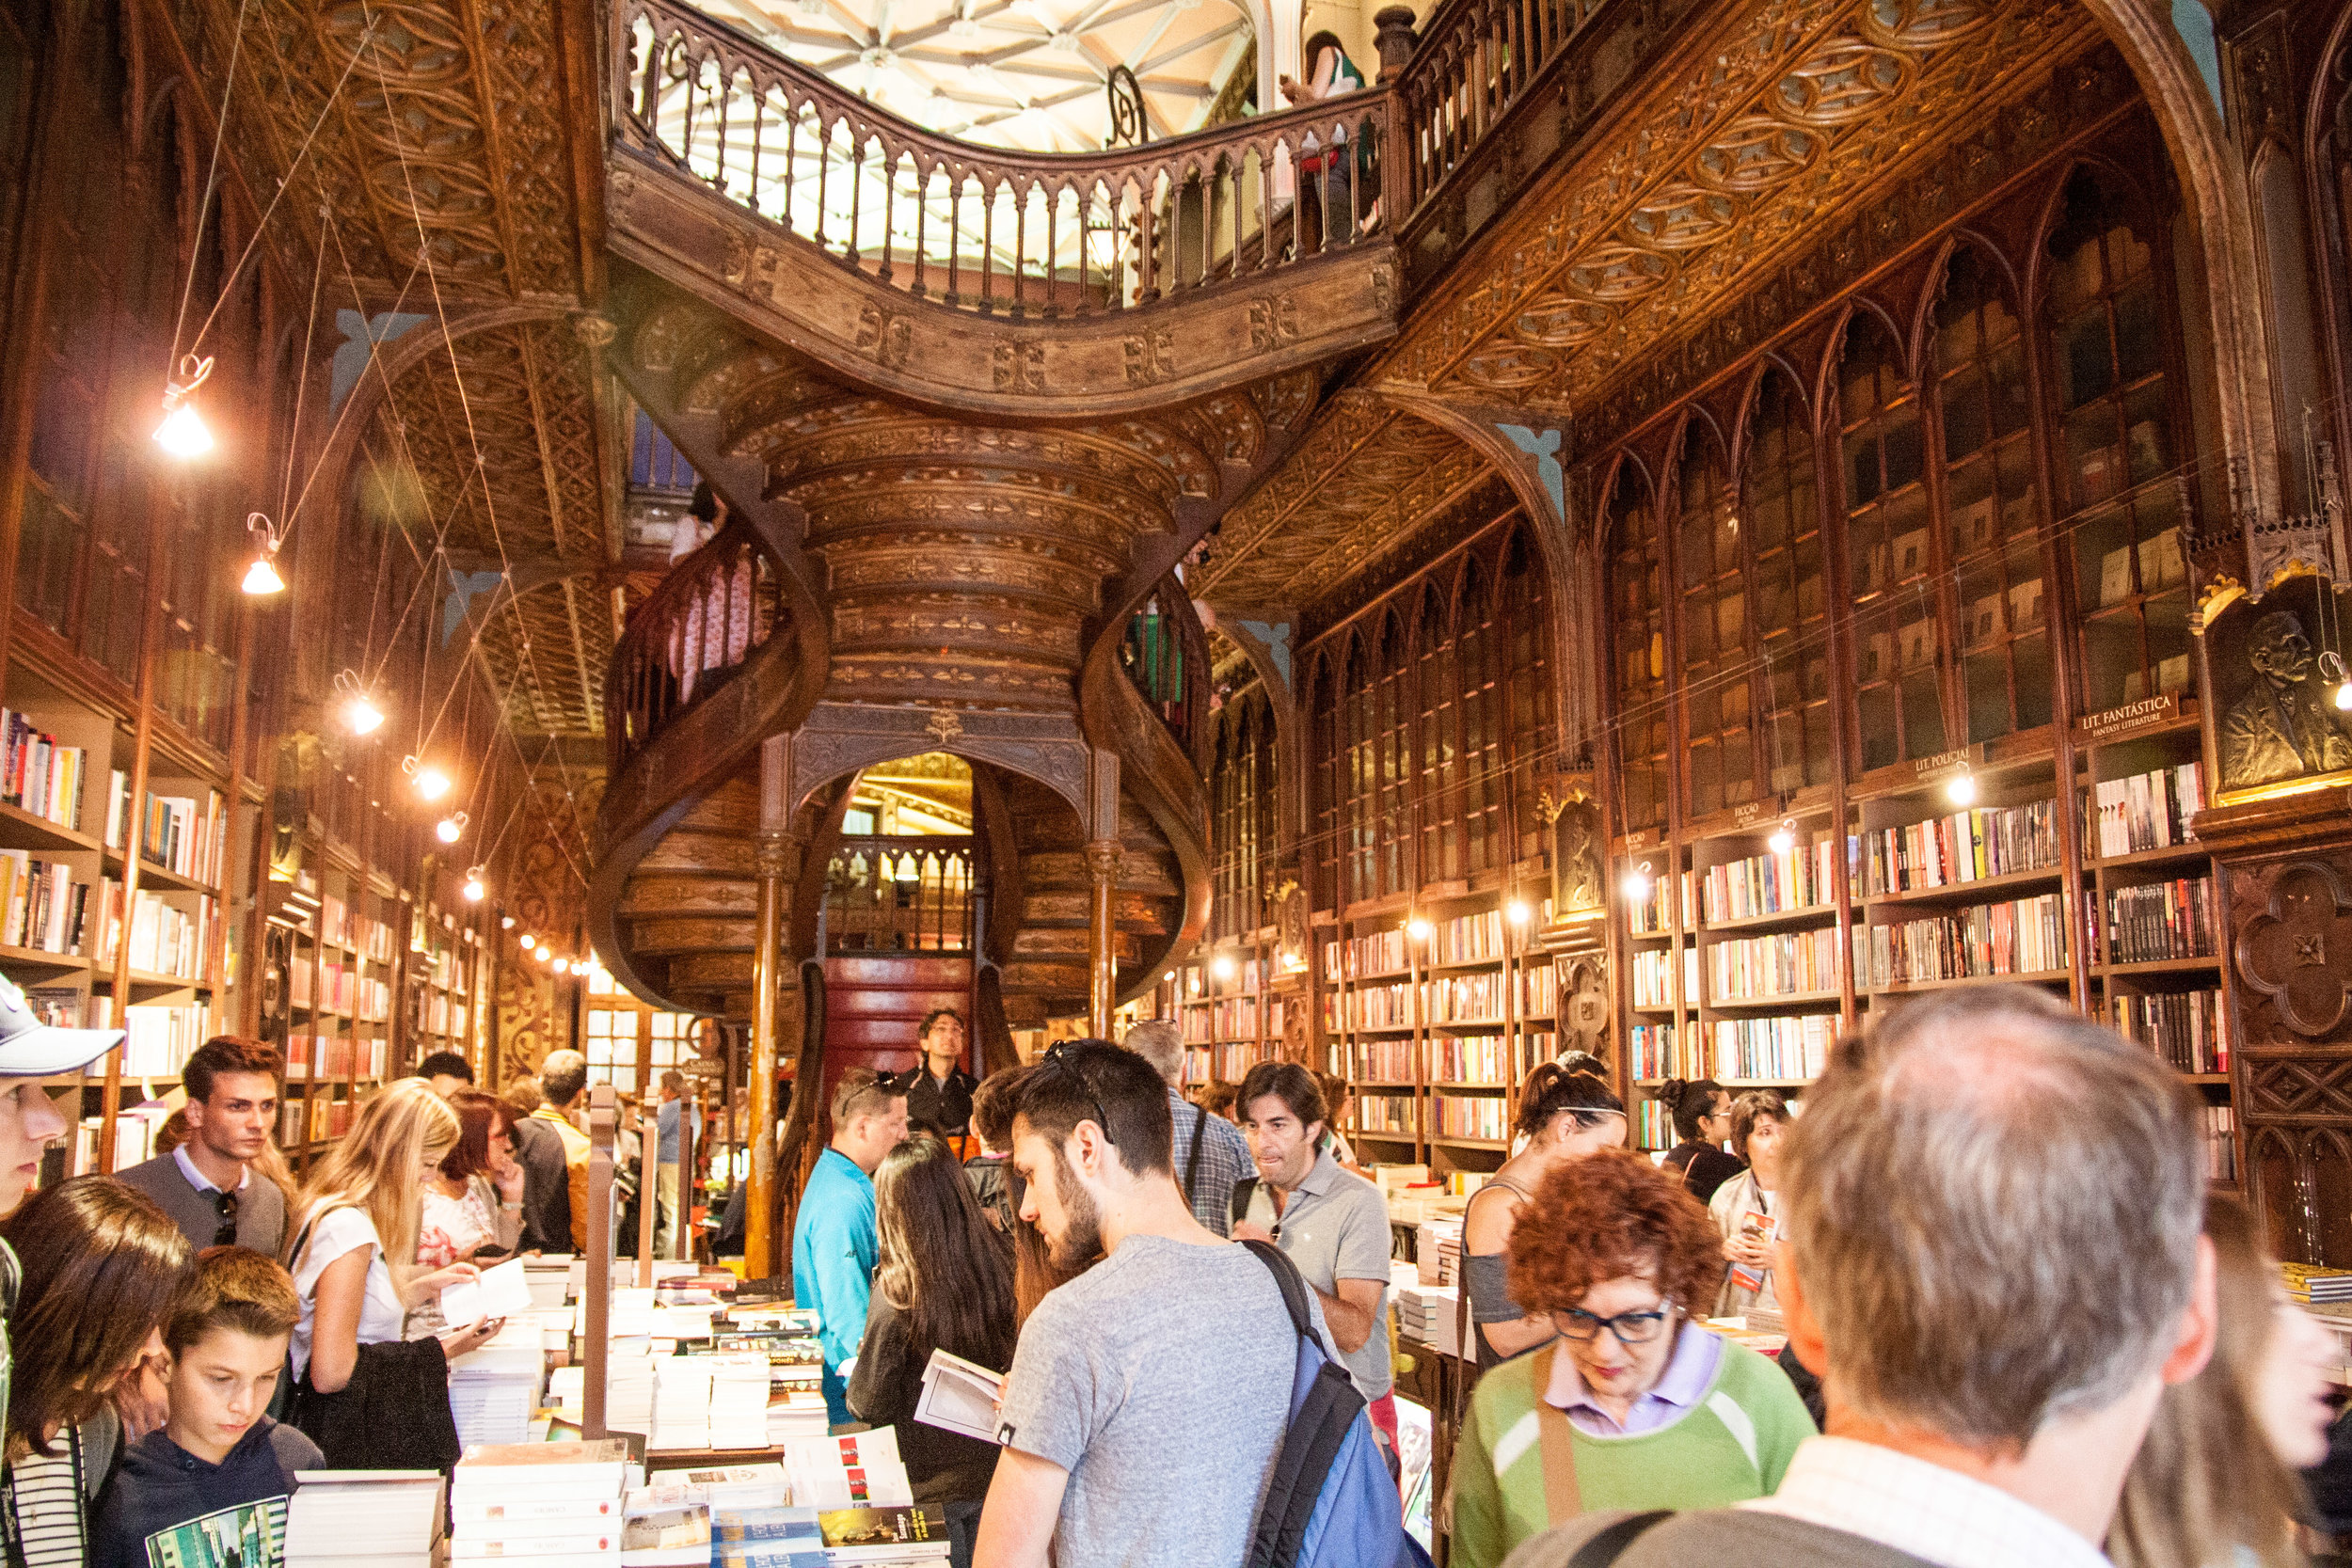 Lello Bookstore 10 minutes after opening